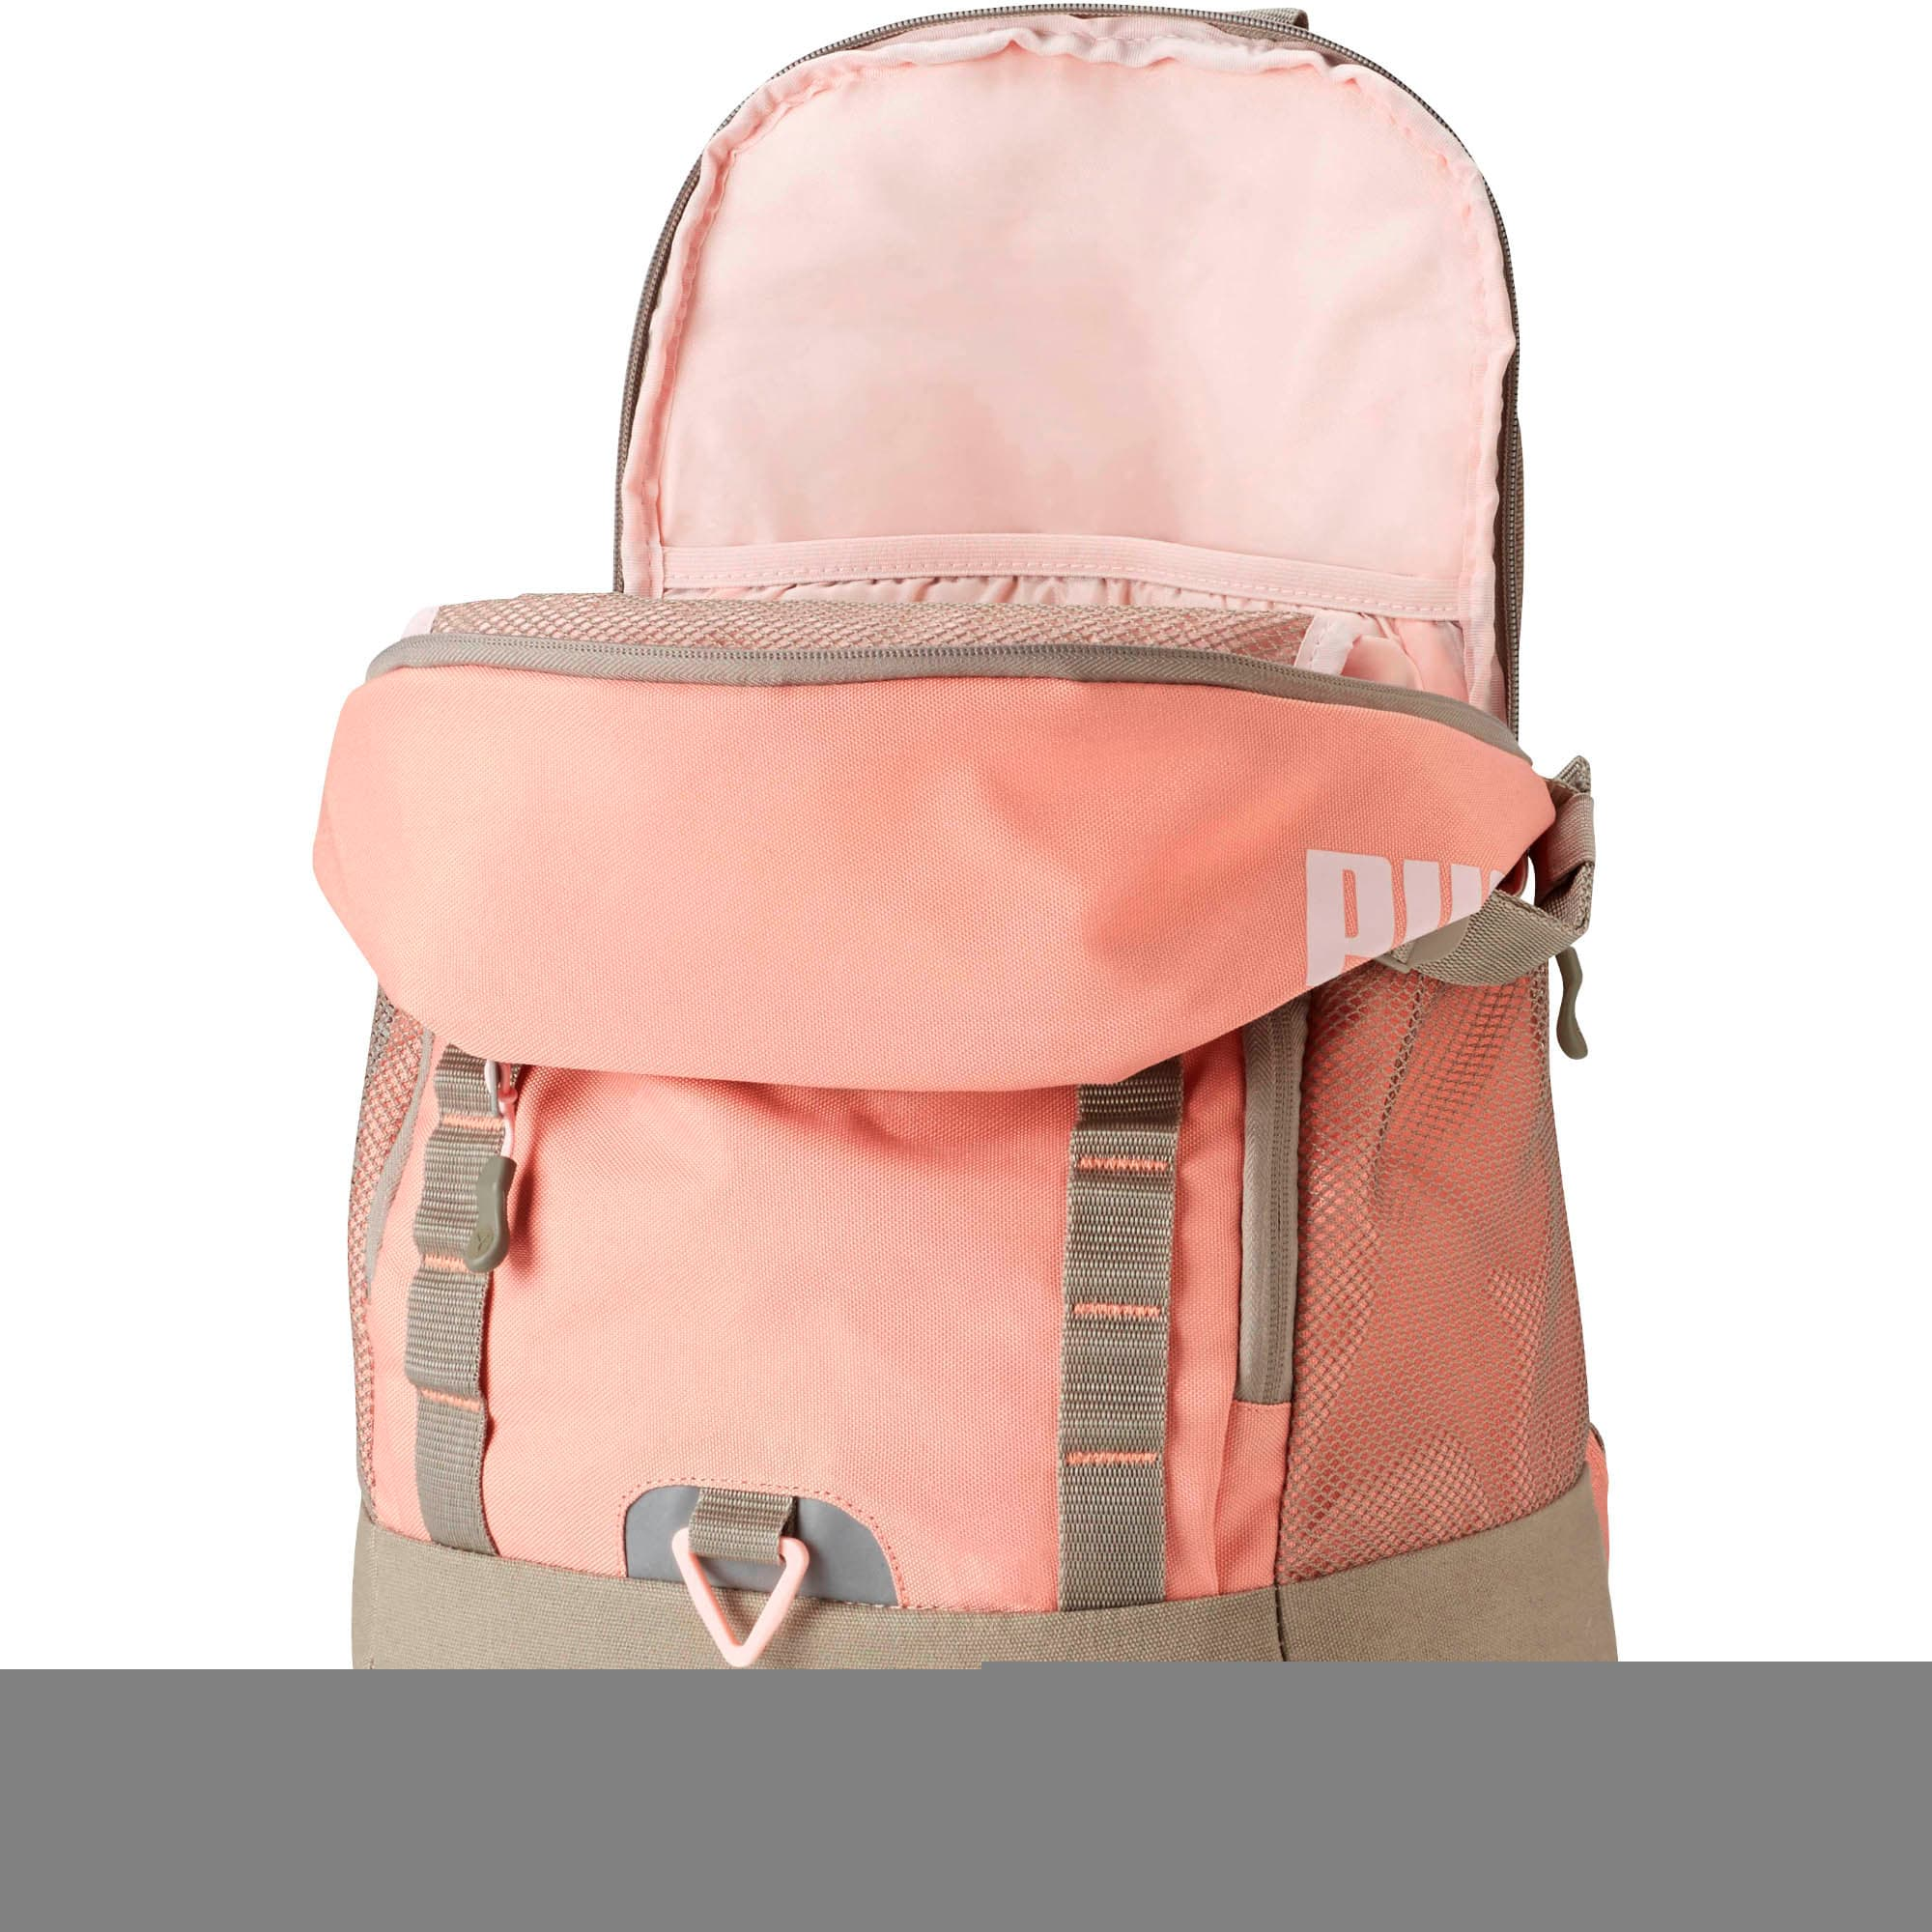 Miniatura 2 de Mochila EVERCAT Fraction, Peach Beige, mediano